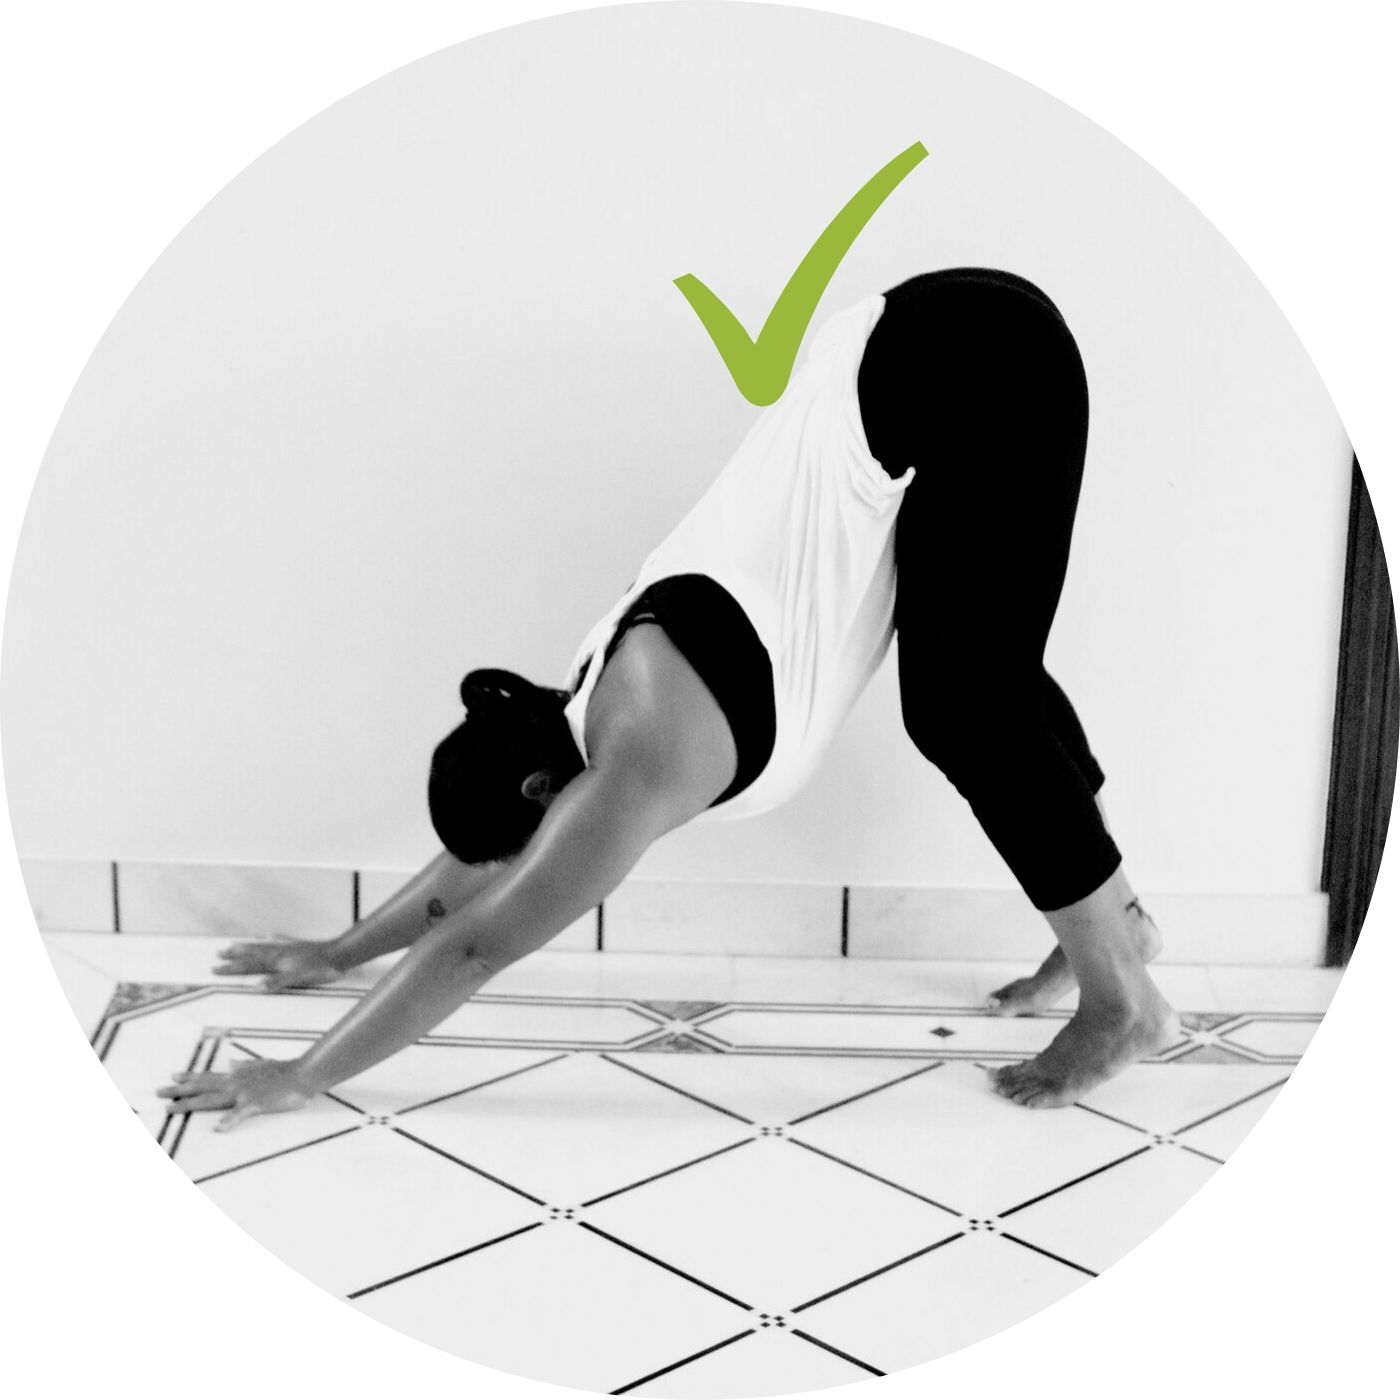 Progressing to Down Dog | - Checkpoints:Keep knees bent.Transition pulling up into Down Dog from the tailbone. You might hit a